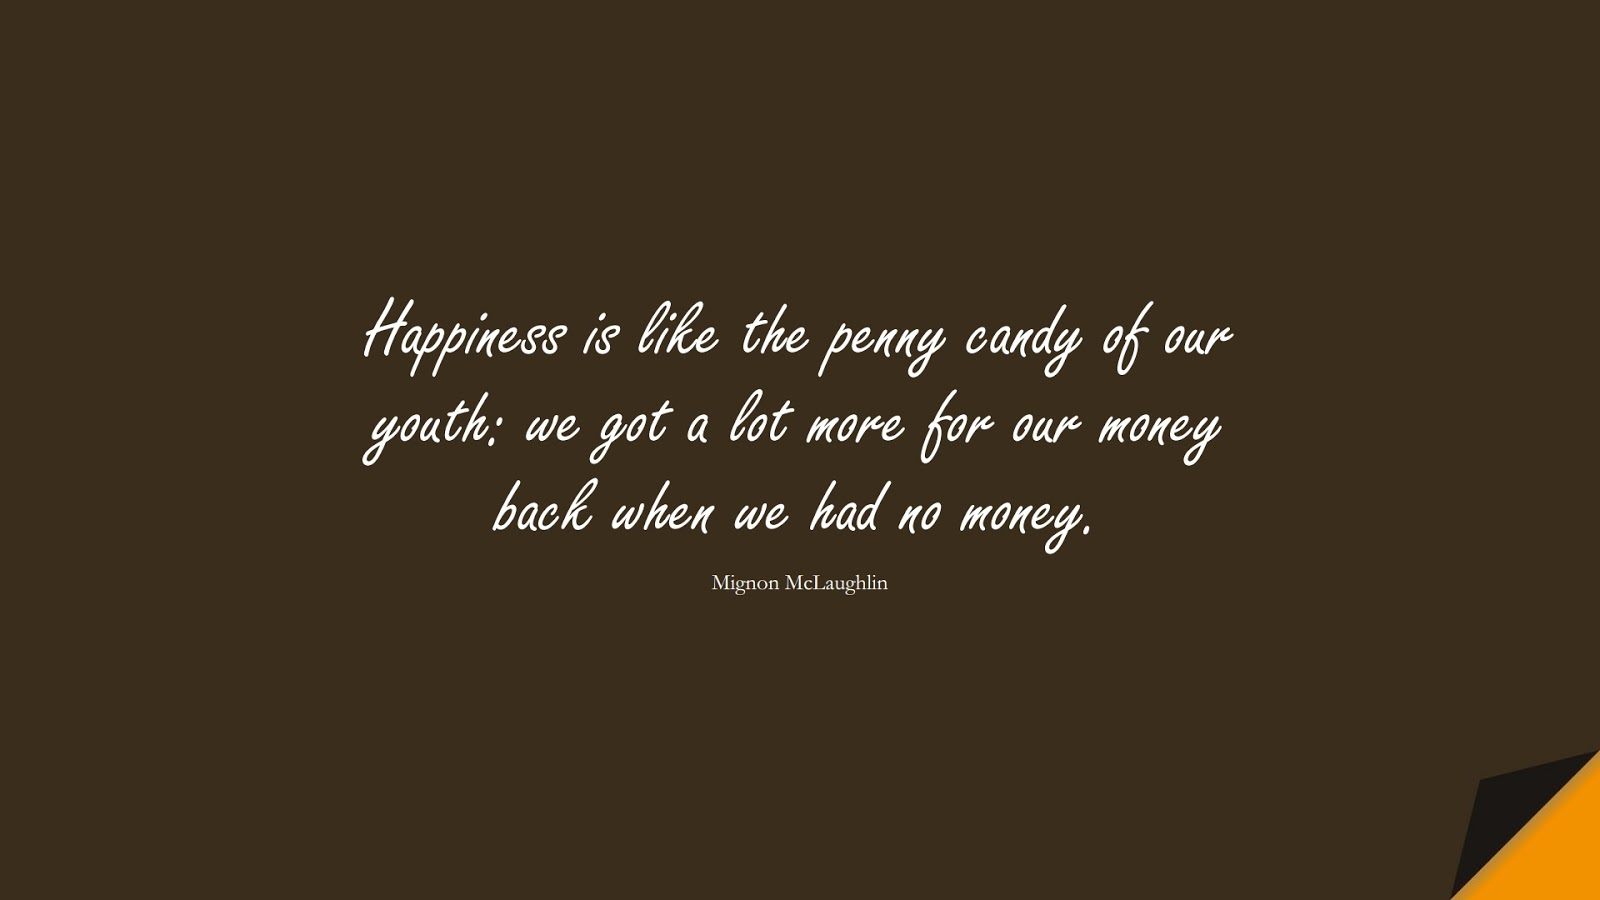 Happiness is like the penny candy of our youth: we got a lot more for our money back when we had no money. (Mignon McLaughlin);  #HappinessQuotes